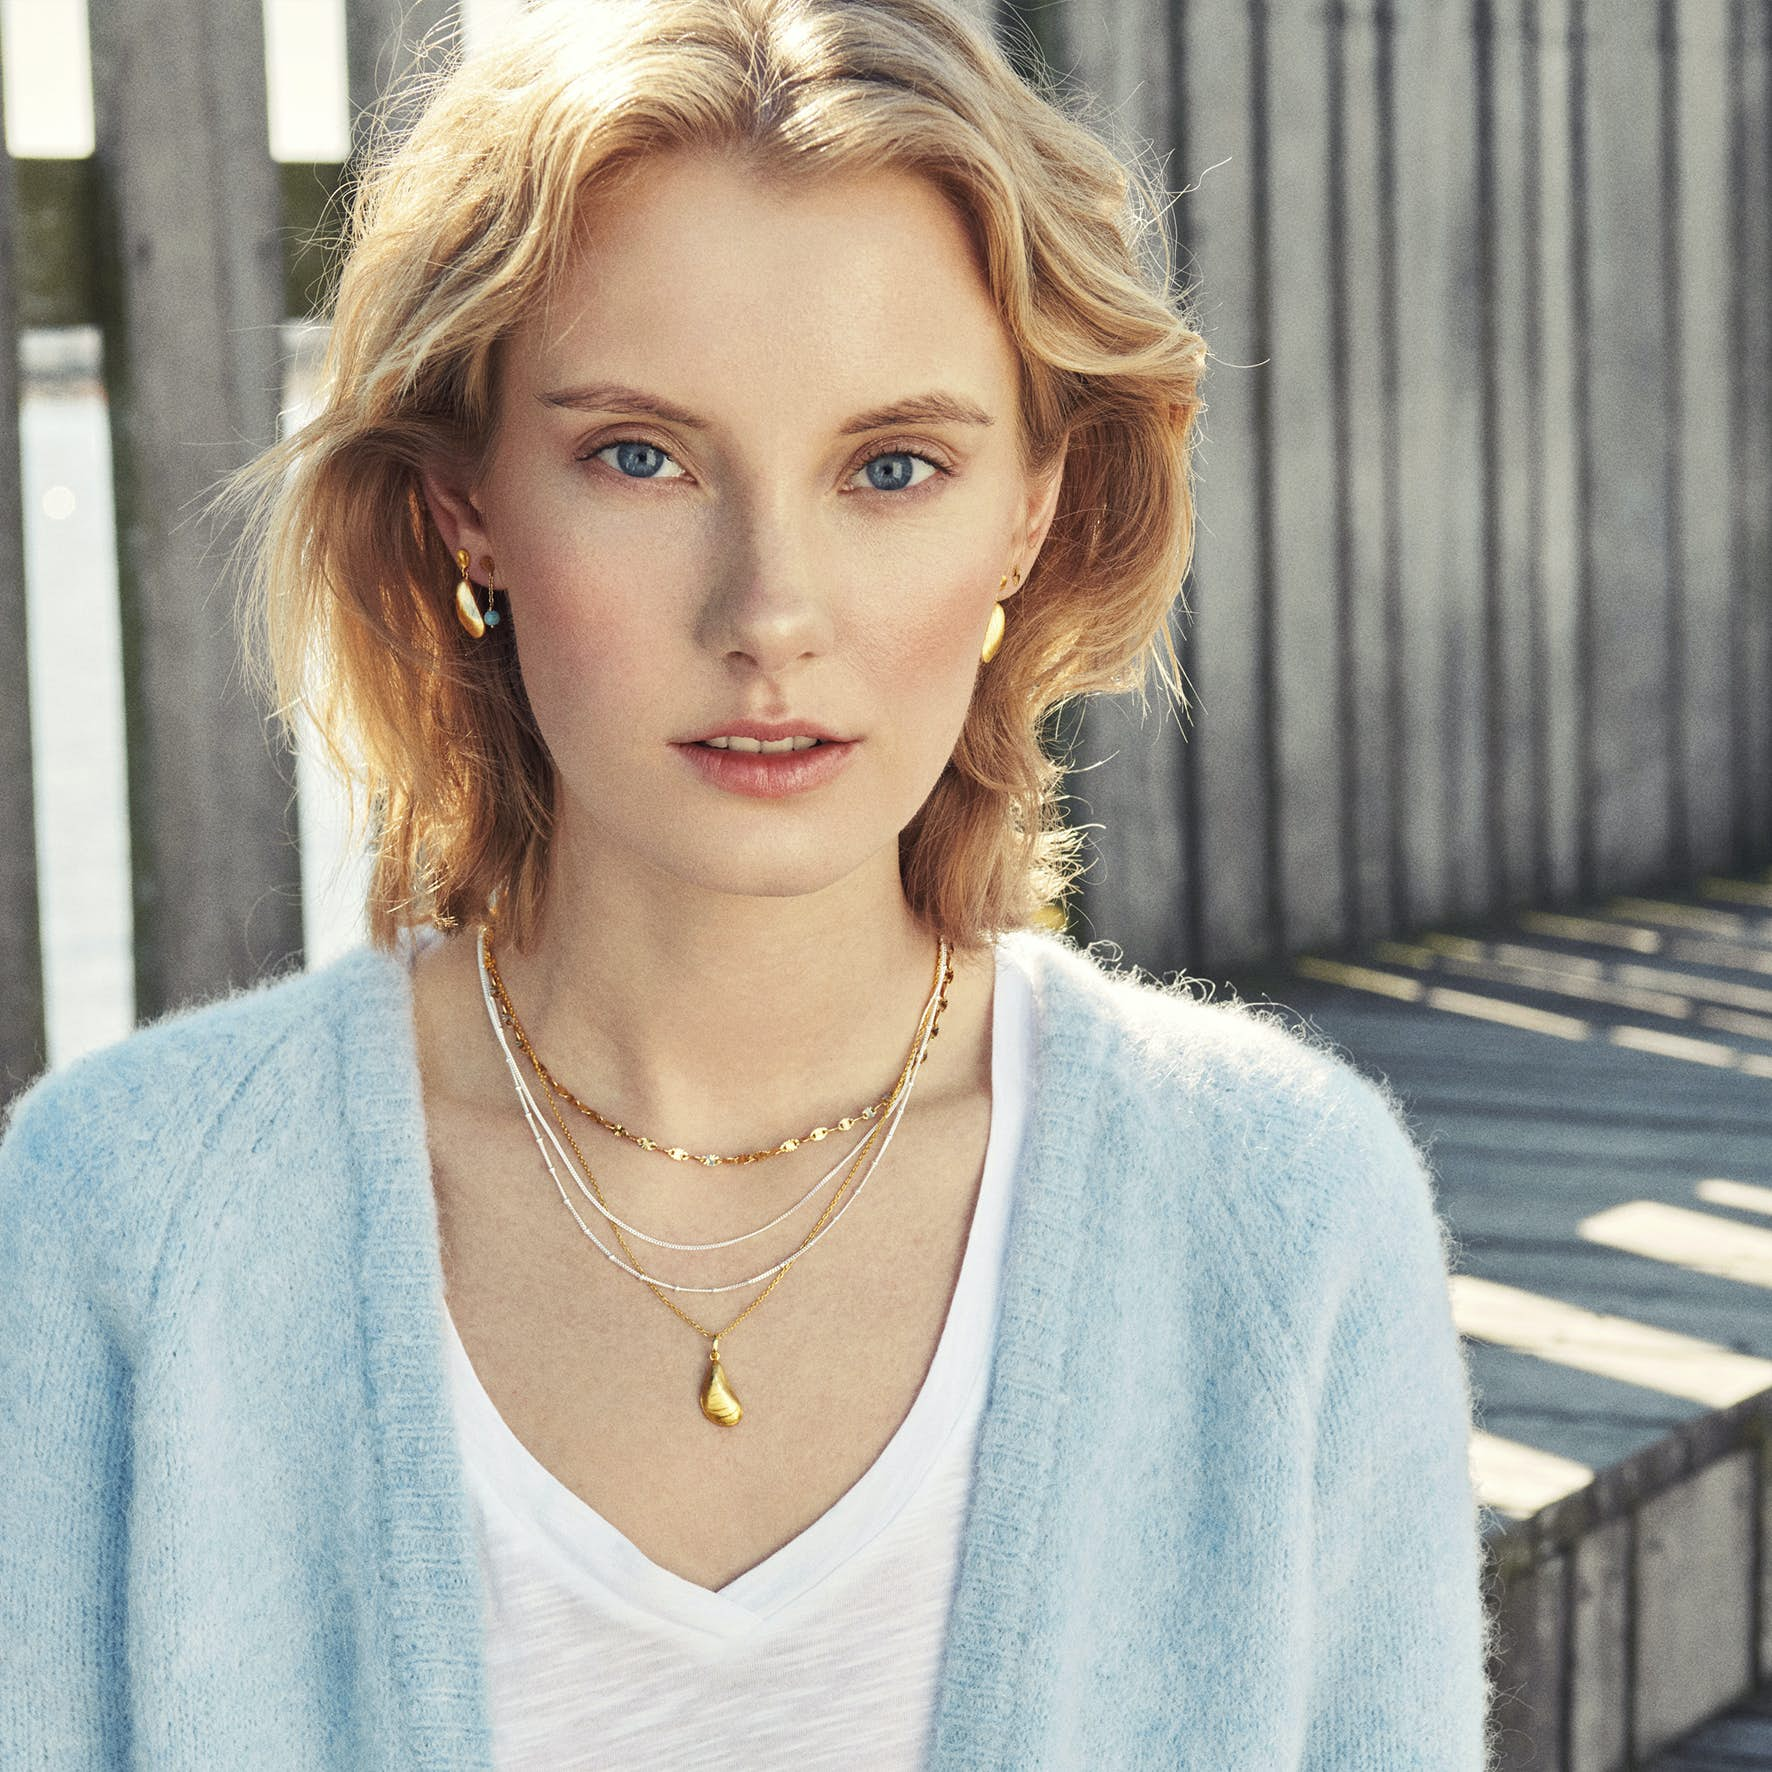 Galaxy Necklace from Pernille Corydon in Silver Sterling 925